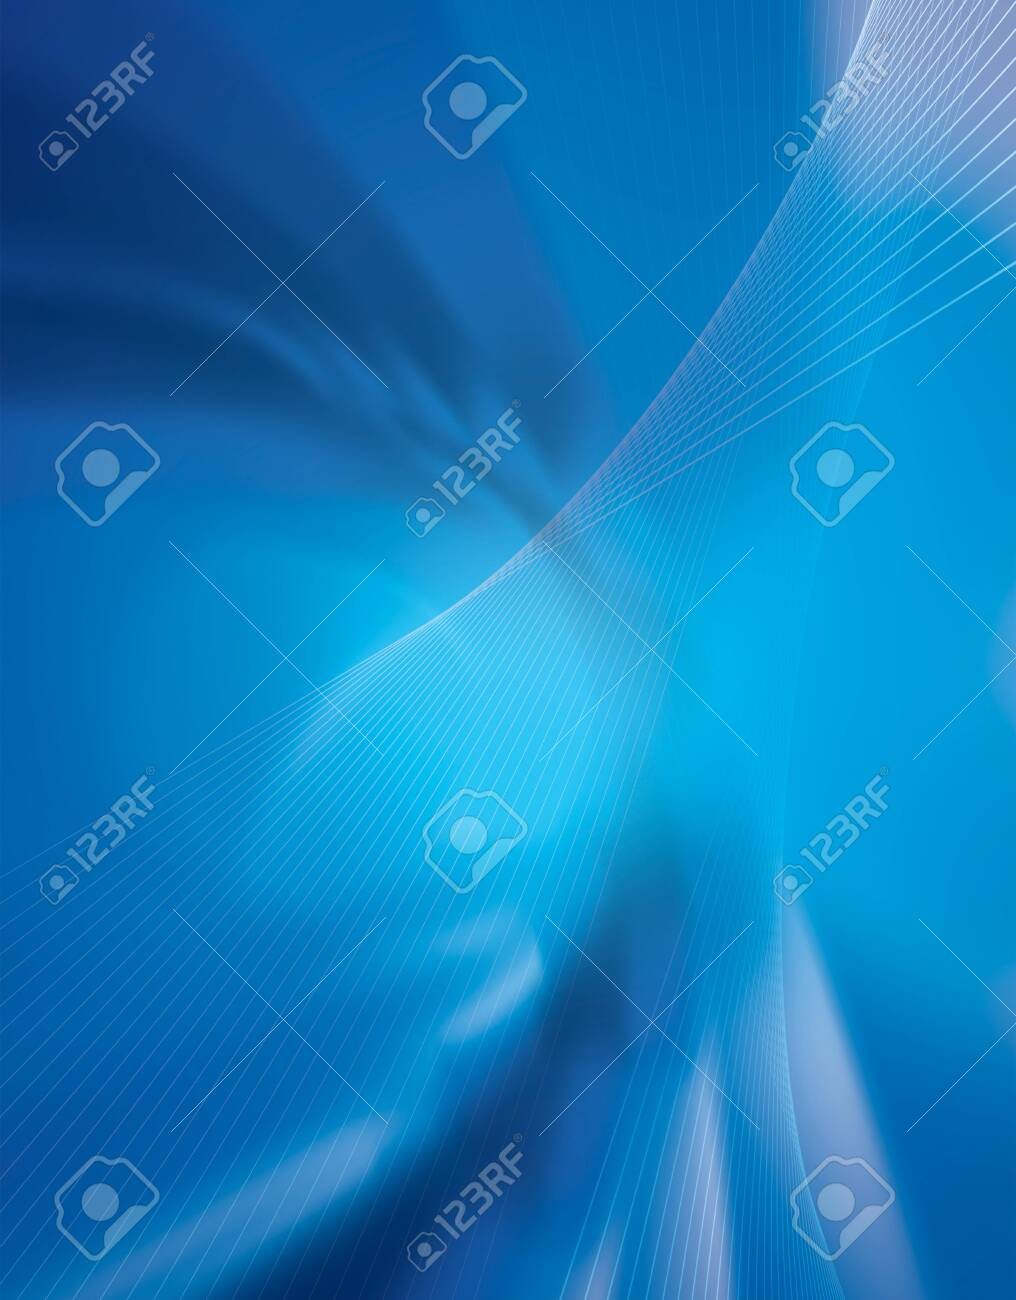 blue black abstract background gradient - 140306745